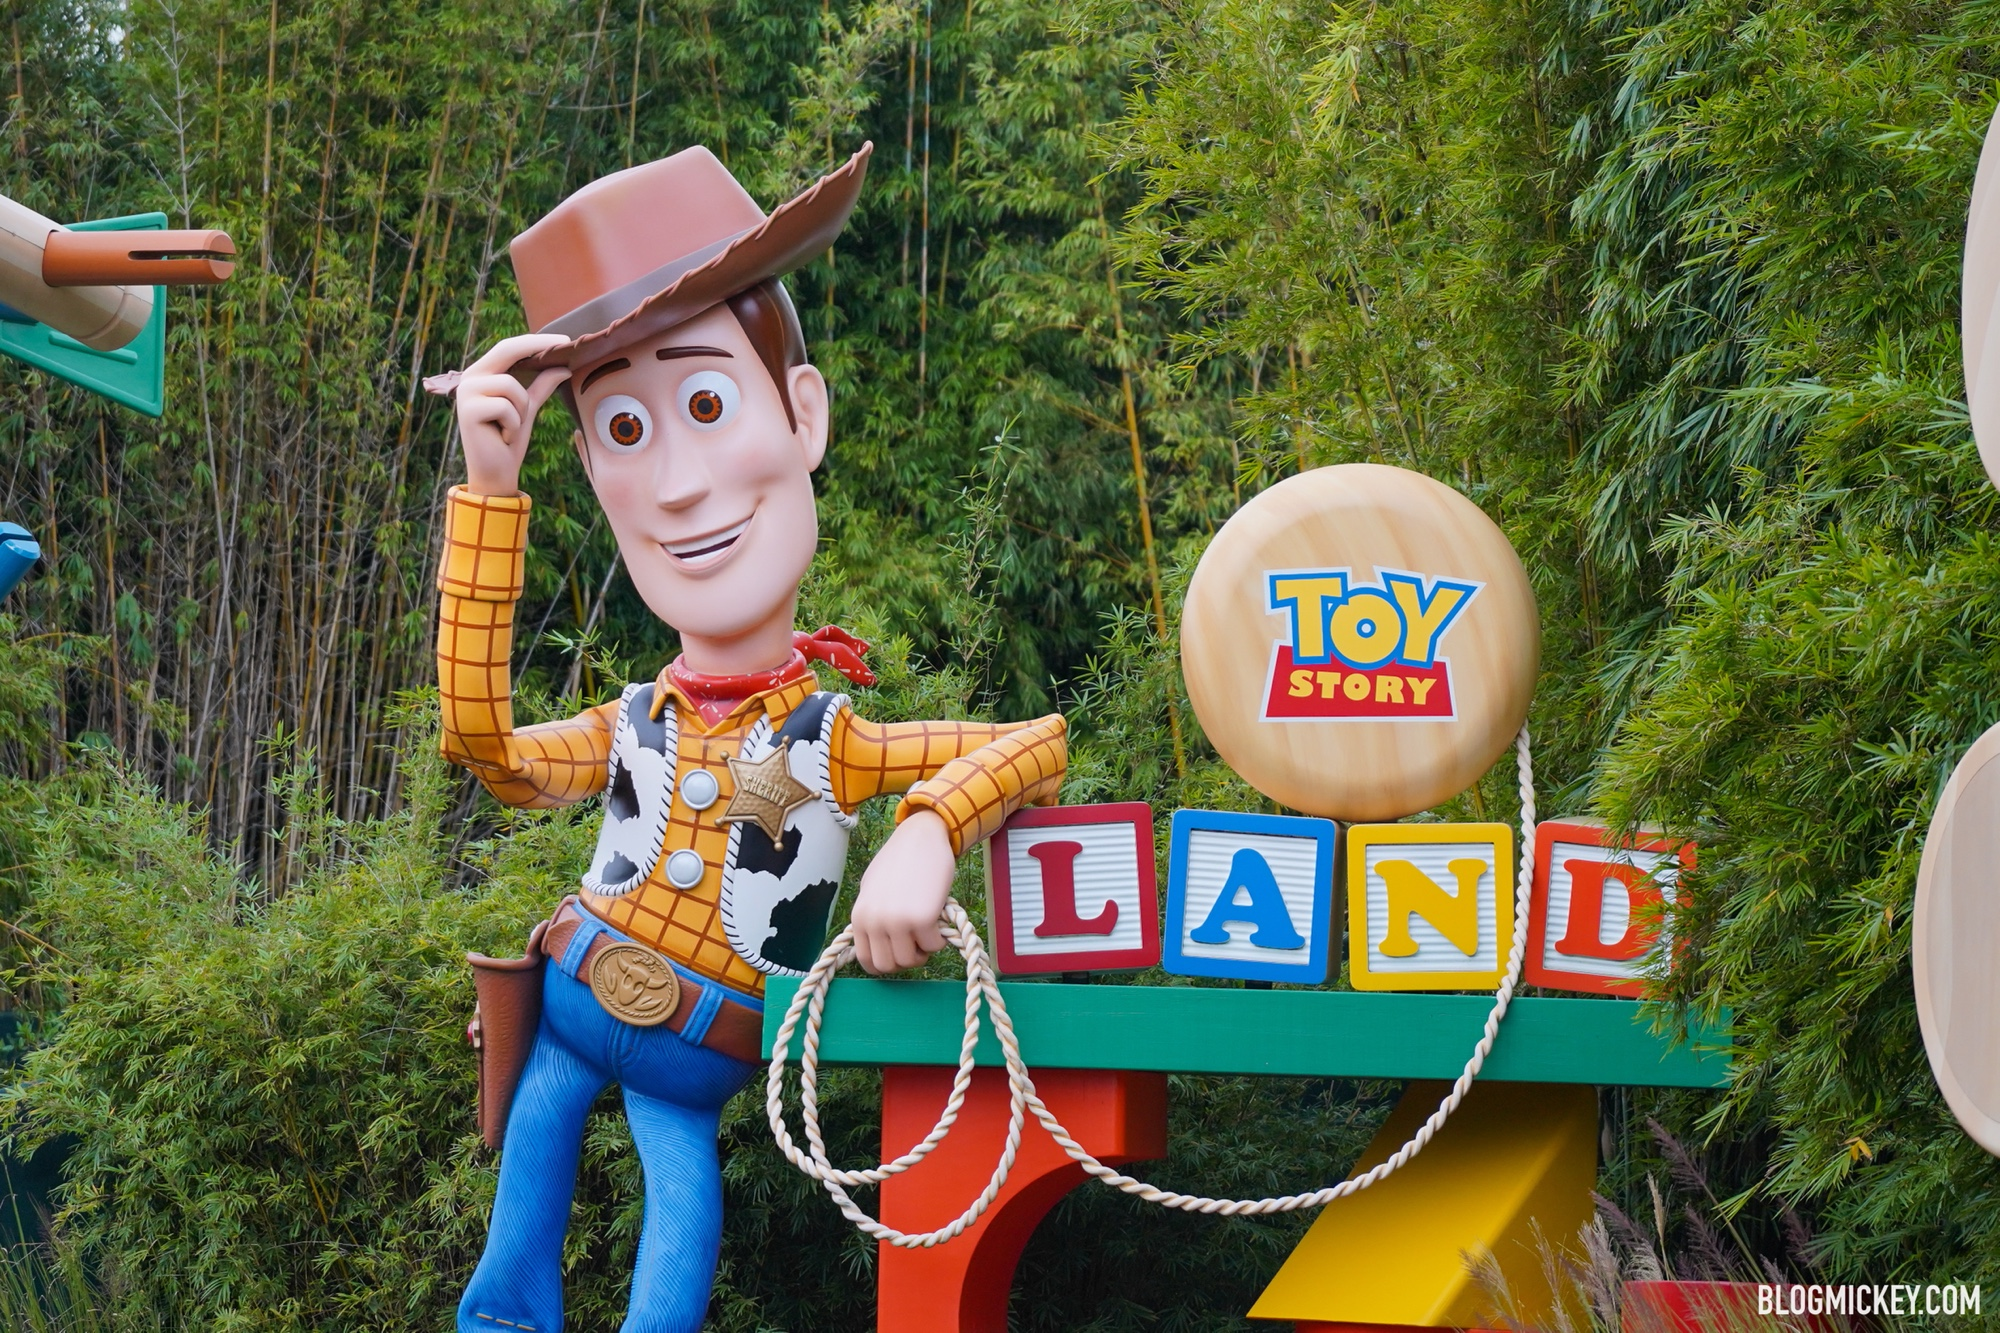 Cowboy Christmas 2020 Vacation Disney Skips Christmas Decorations for Toy Story Land in 2020